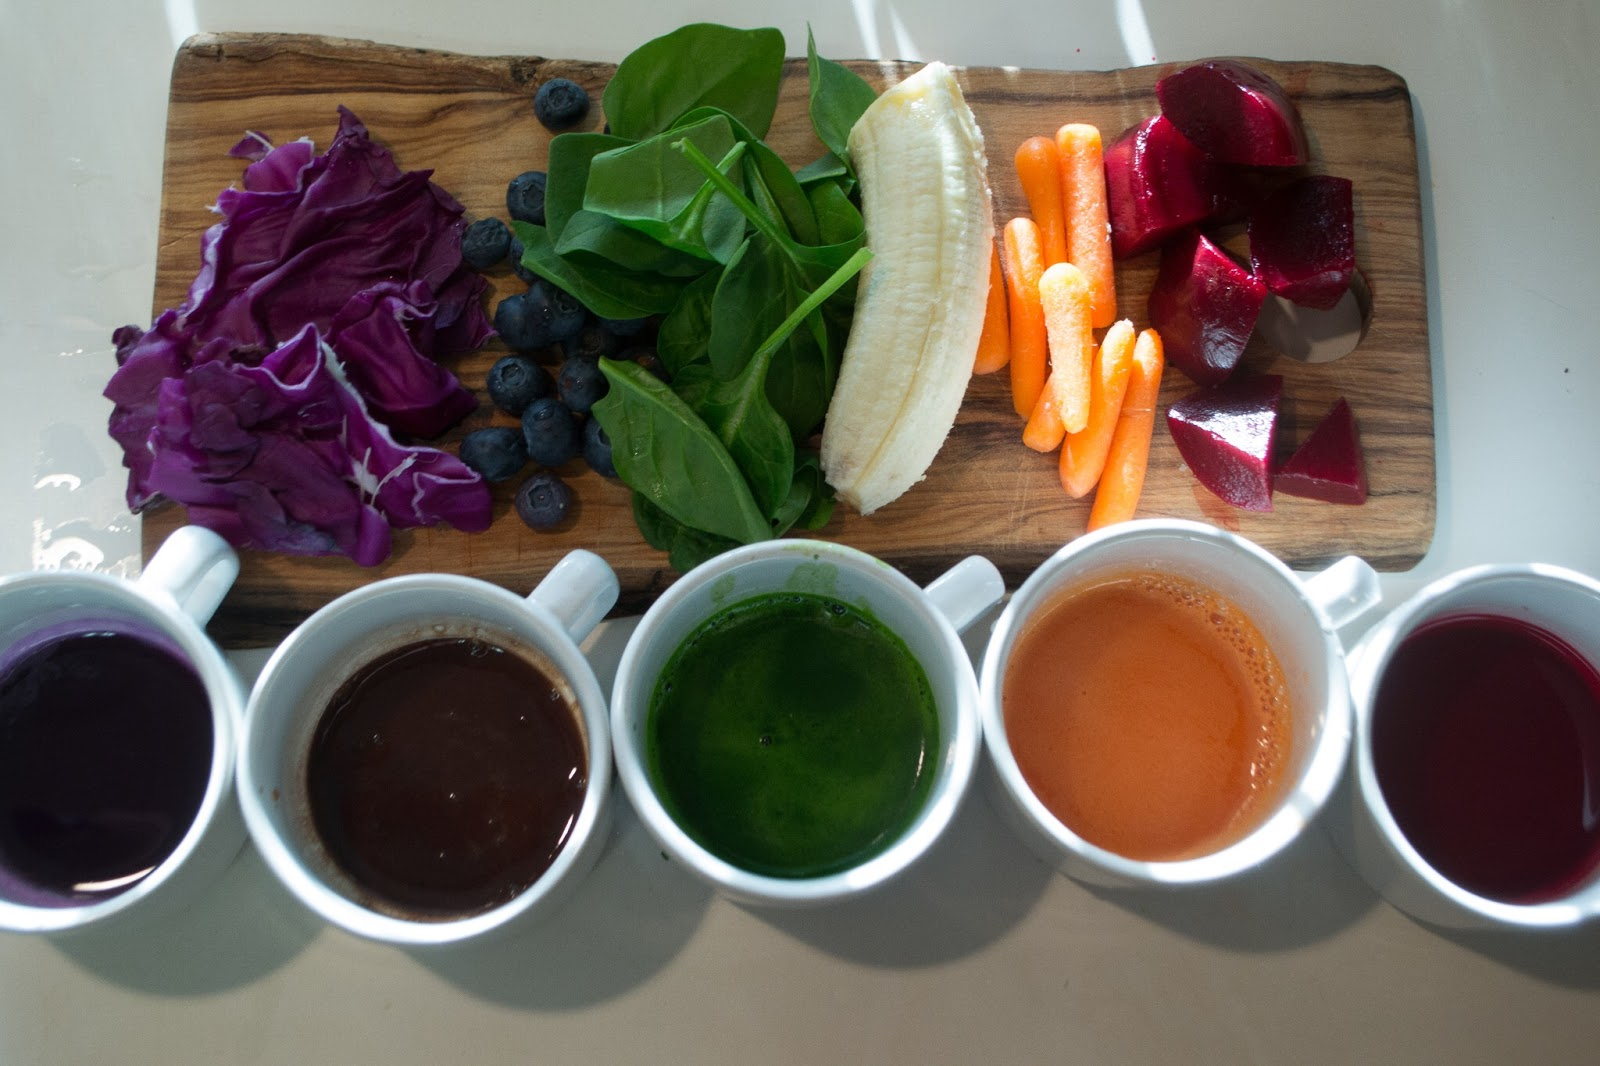 TRULY ORIGINAL ORGANICS: Natural Food Dyes